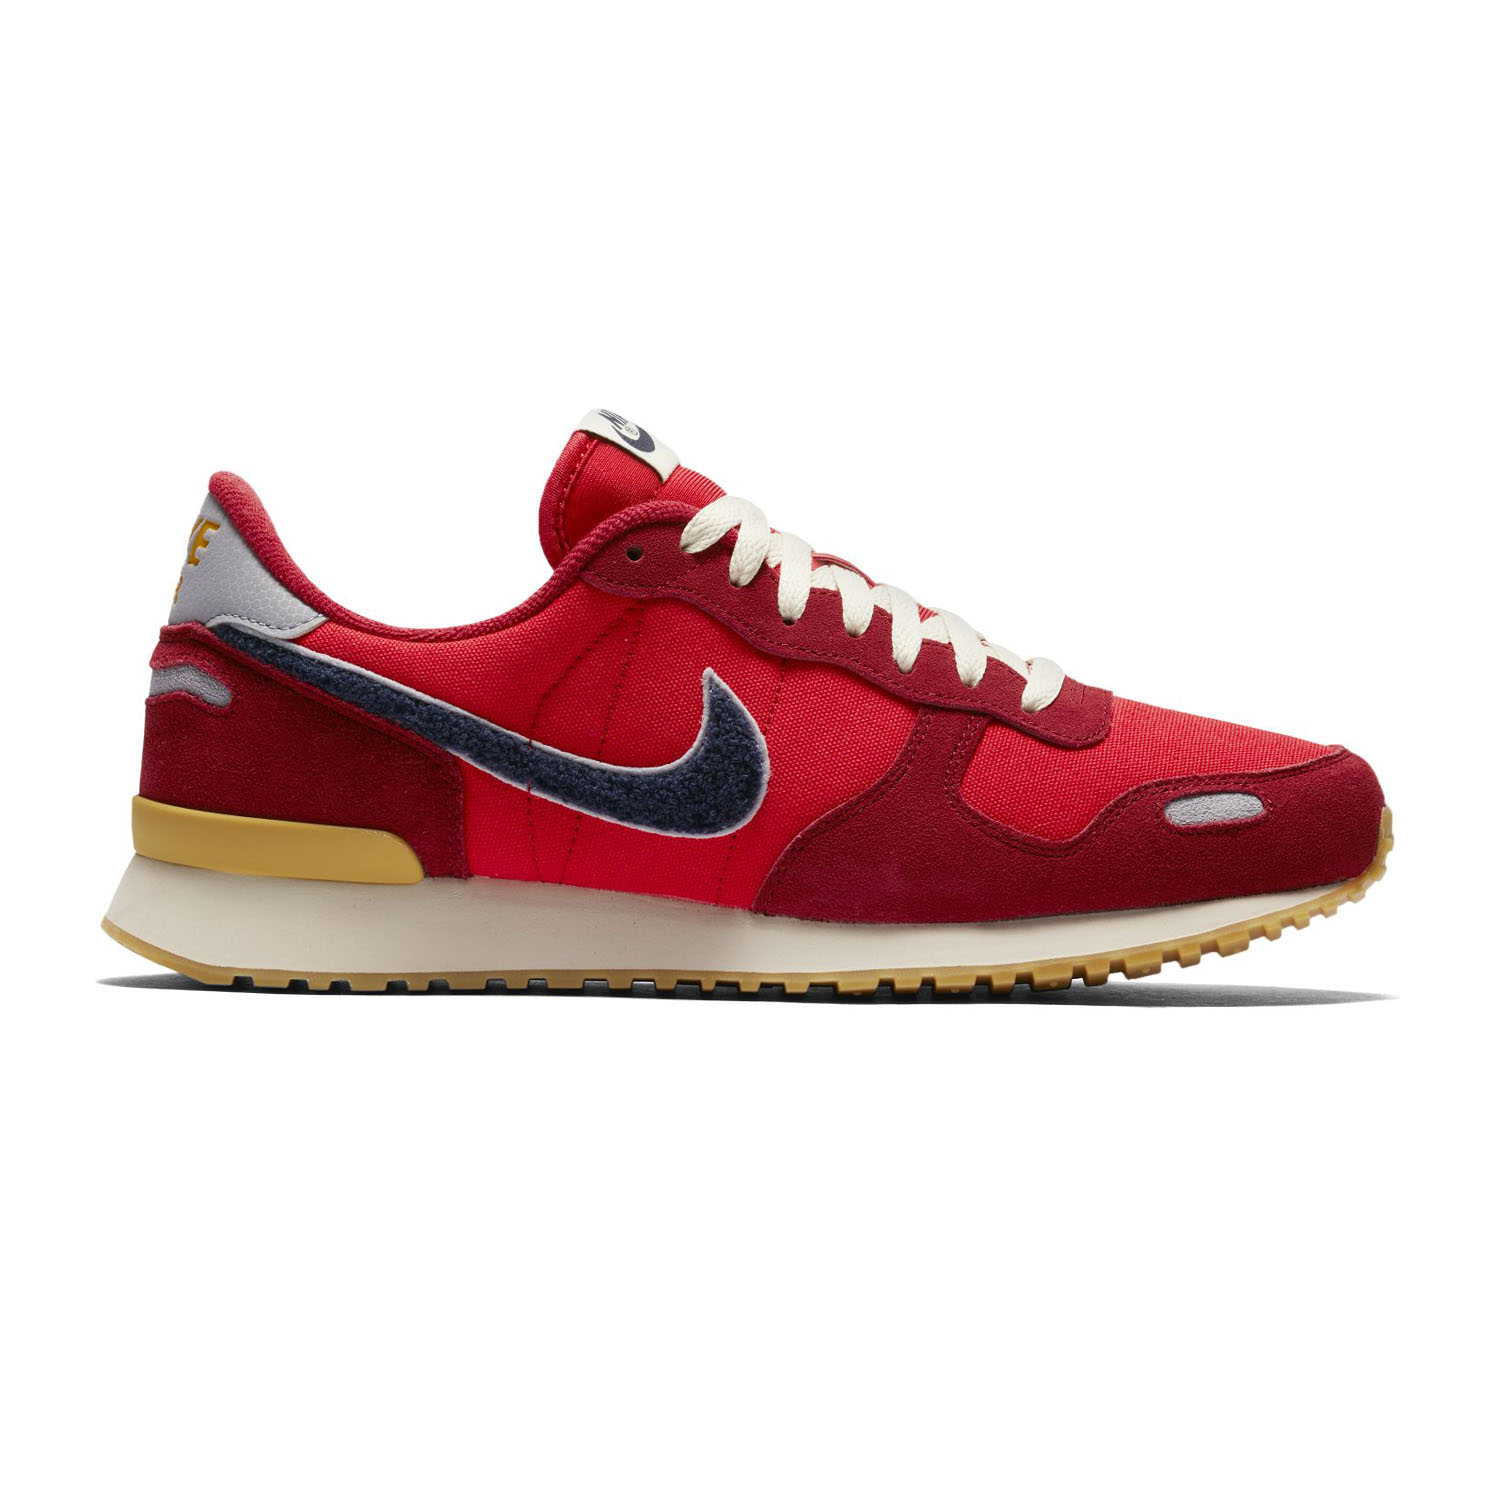 Nike Air Vortex SE M ( 918246-600 ) παπούτσια    άνδρας   sneakers   trainers